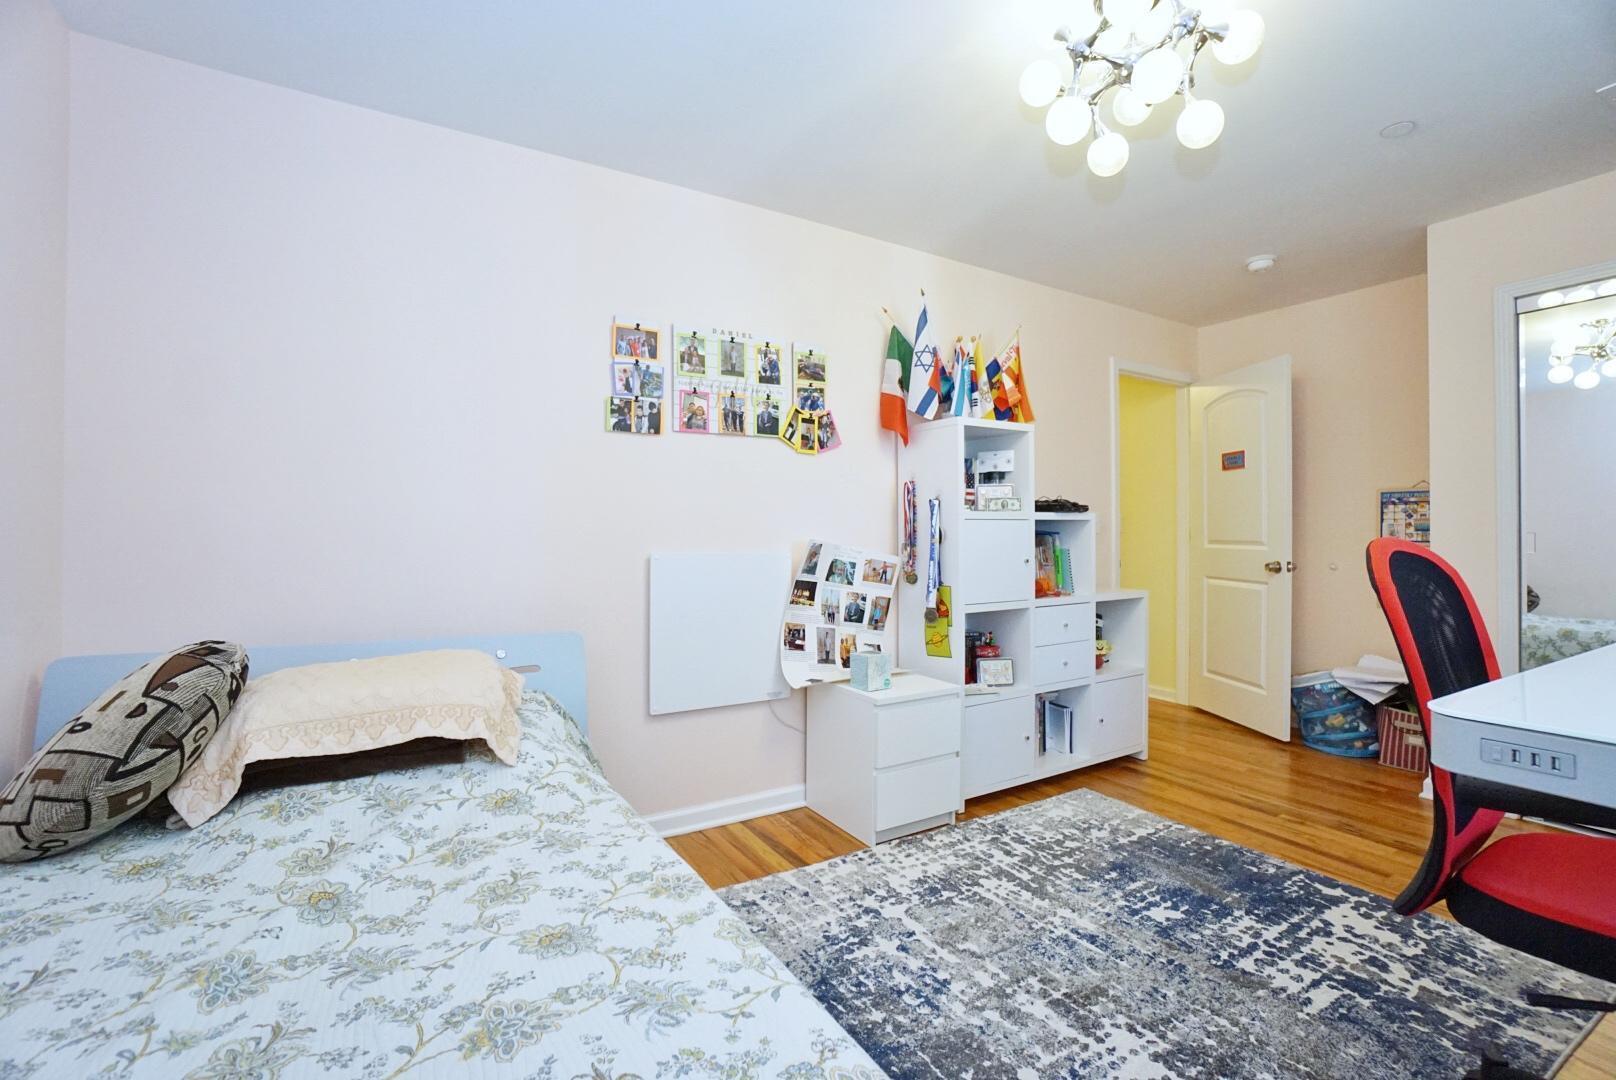 Single Family - Detached 171 Benziger Avenue  Staten Island, NY 10301, MLS-1145235-27